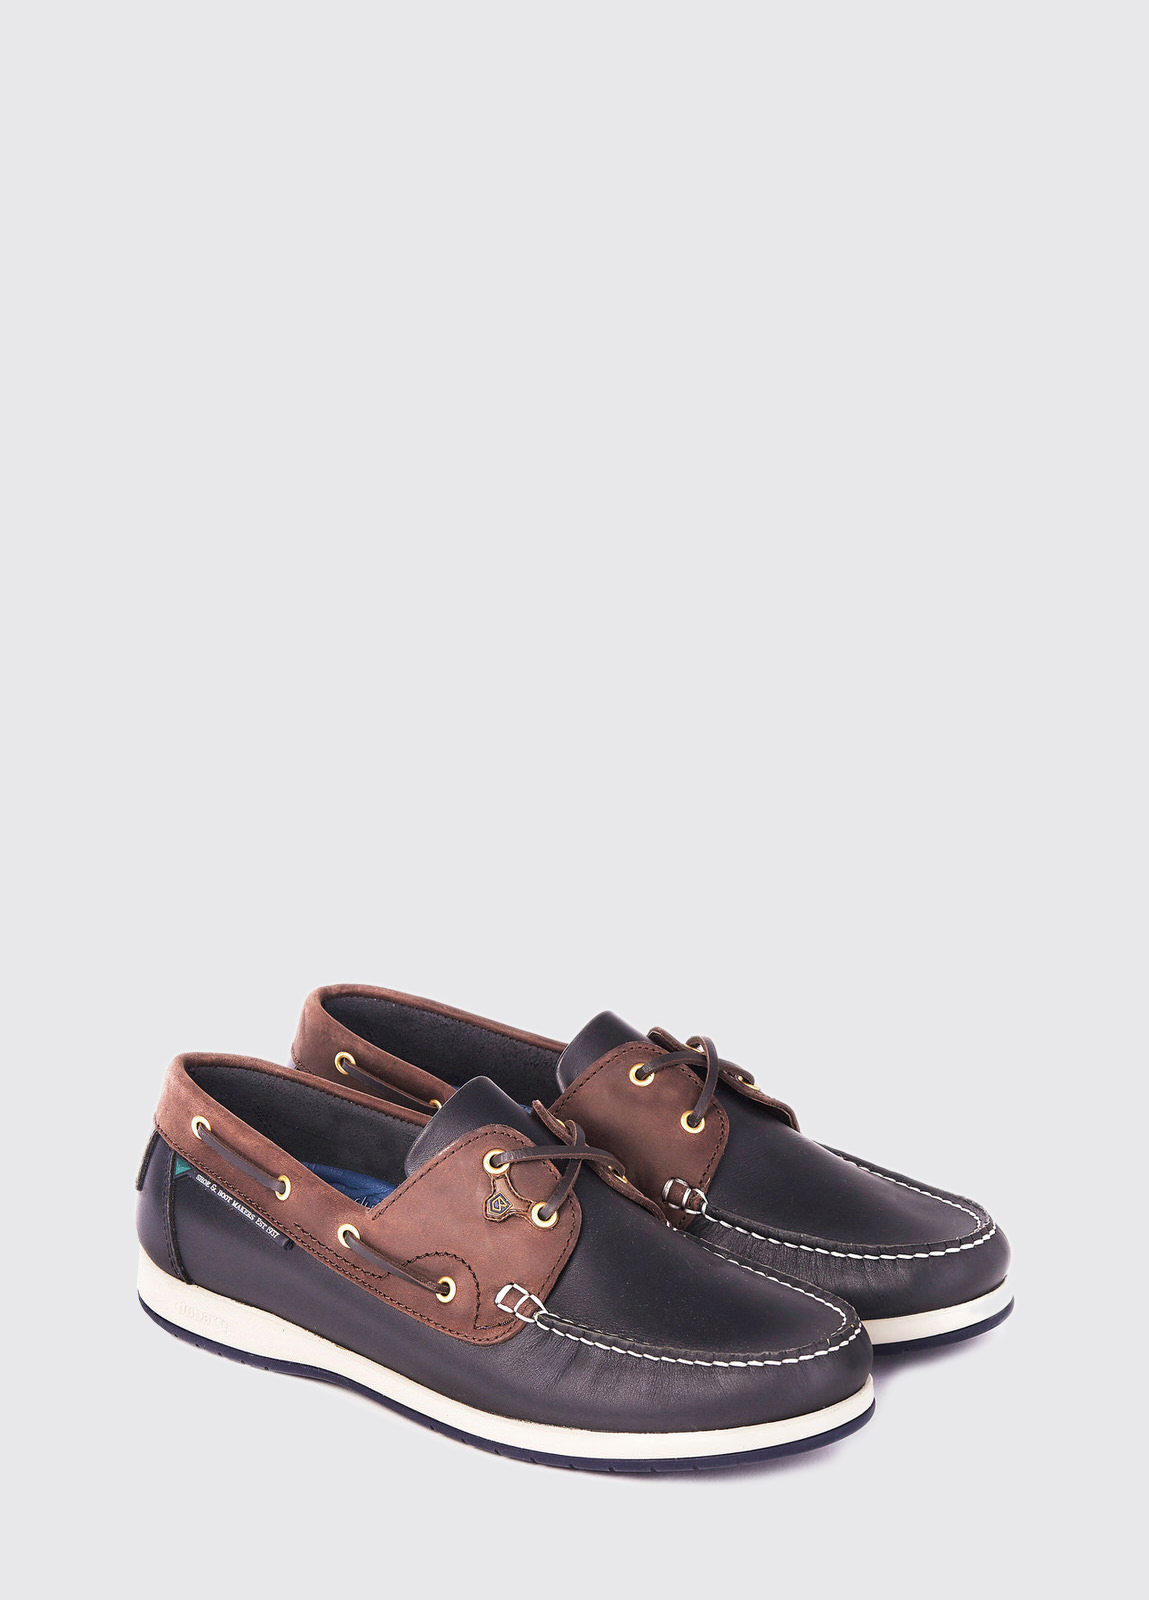 Sailmaker X LT Deck Shoe - Navy/Brown